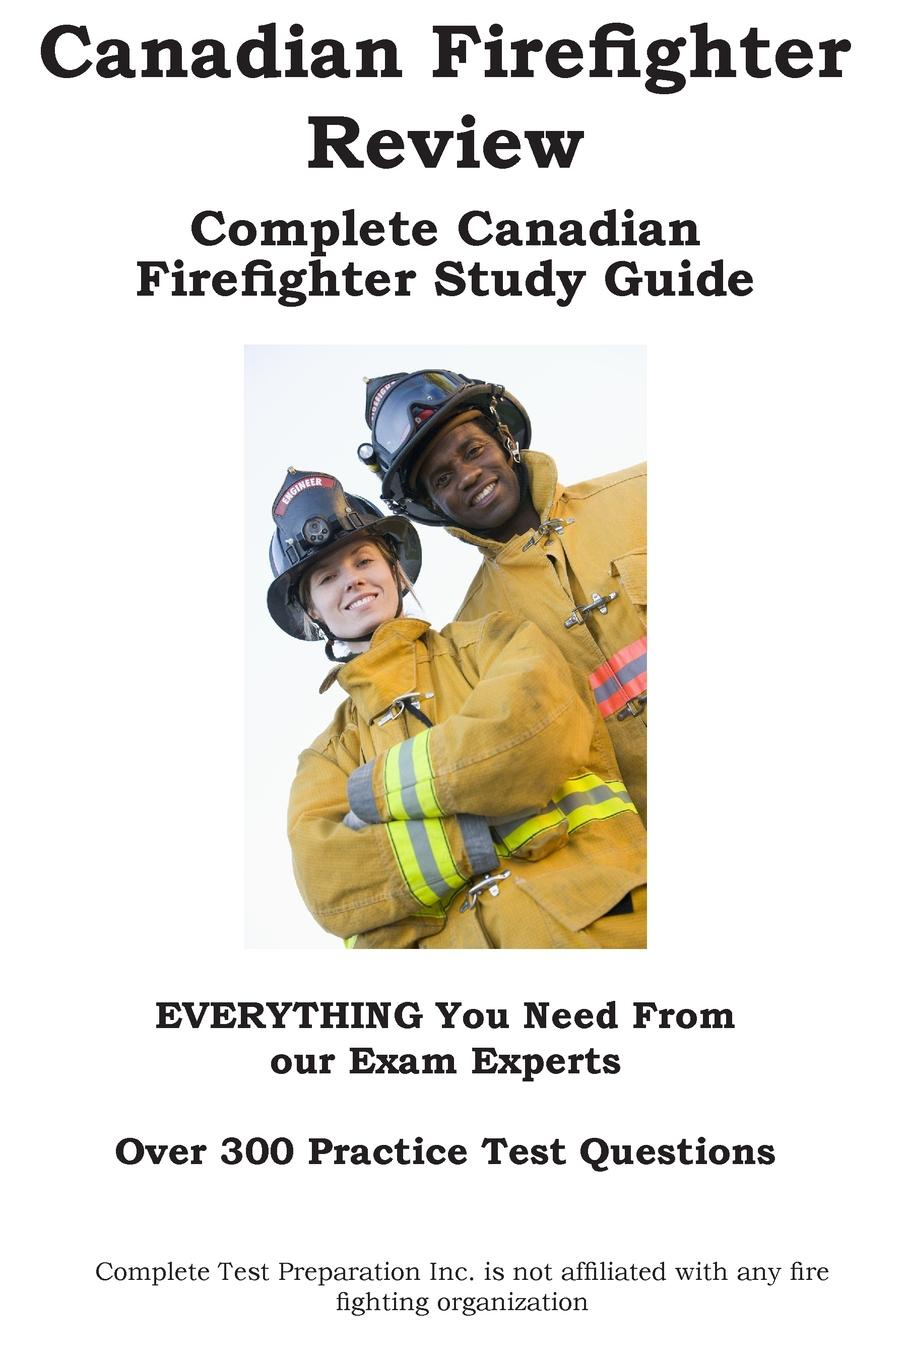 Complete Test Preparation Inc. Canadian Firefighter Review. Complete Canadian Firefighter Study Guide and Practice Test Questions